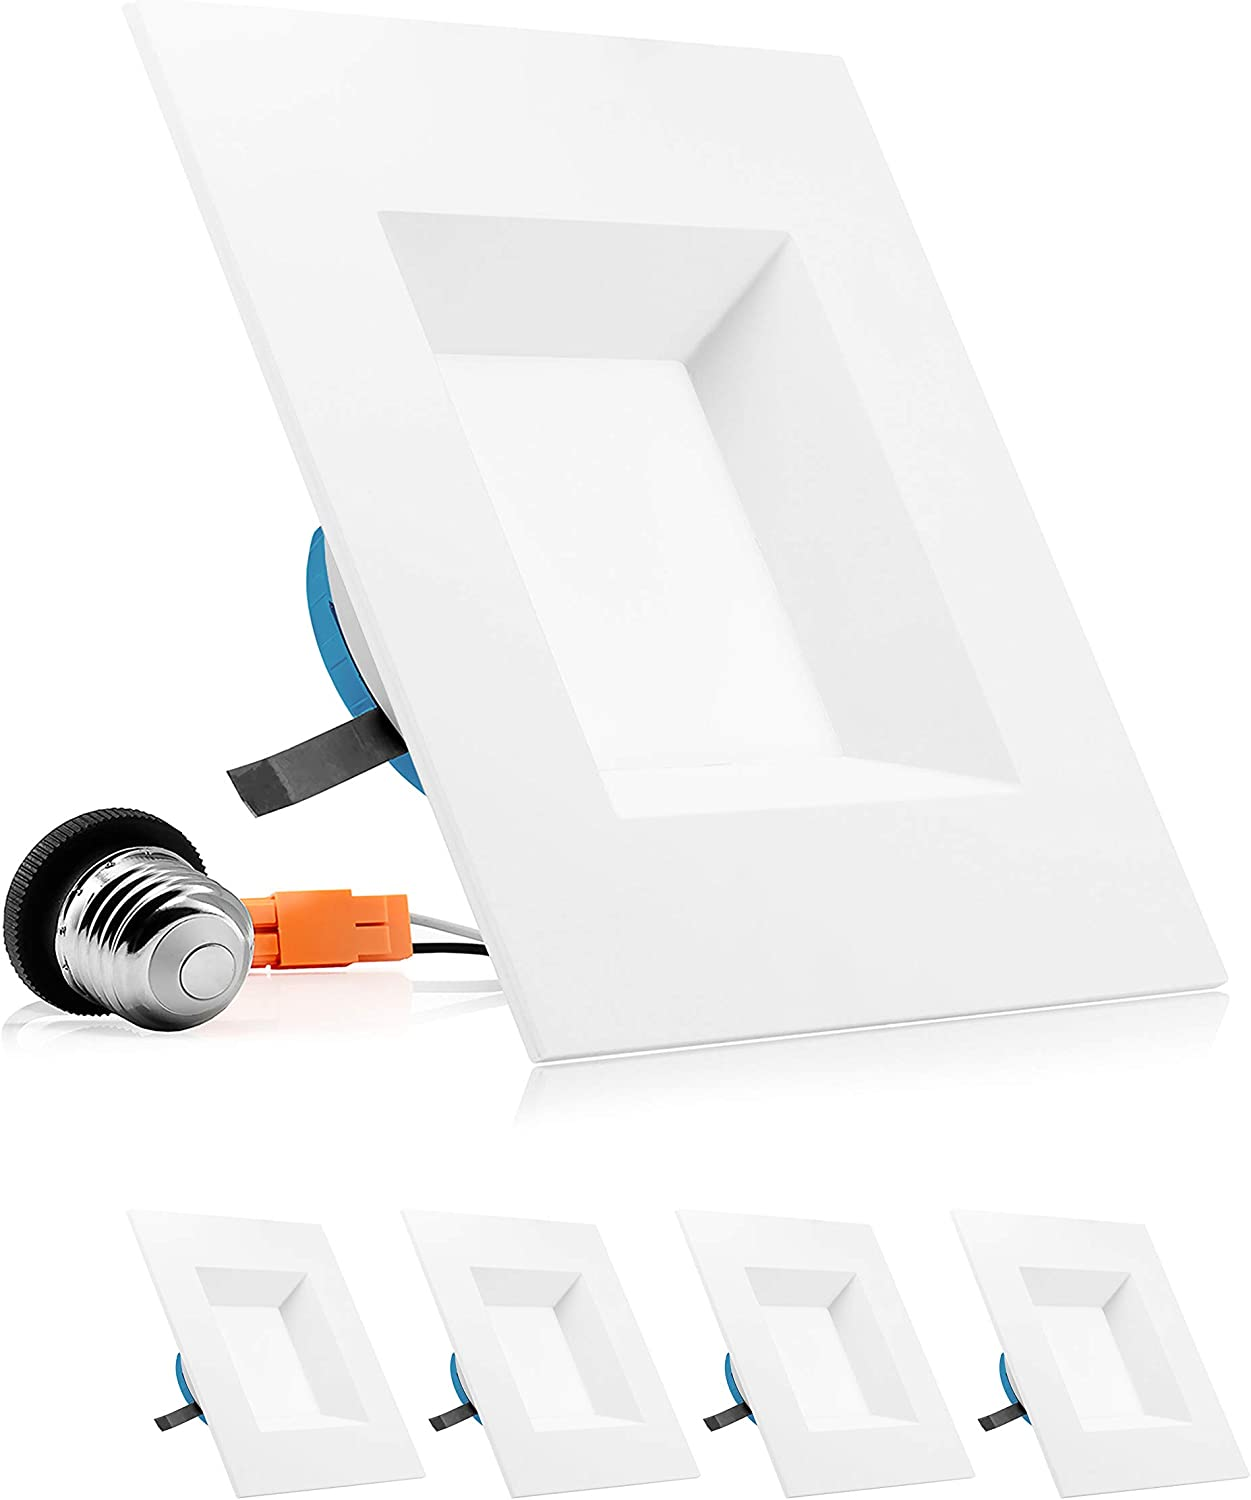 PARMIDA 6 inch Dimmable LED Square Recessed Retrofit Lighting, Easy Downlight Installation, 12W (100W Eqv), 950lm, Ceiling Can Lights, Energy Star & ETL-Listed, 5 Year Warranty, 4000K - 4 Pack